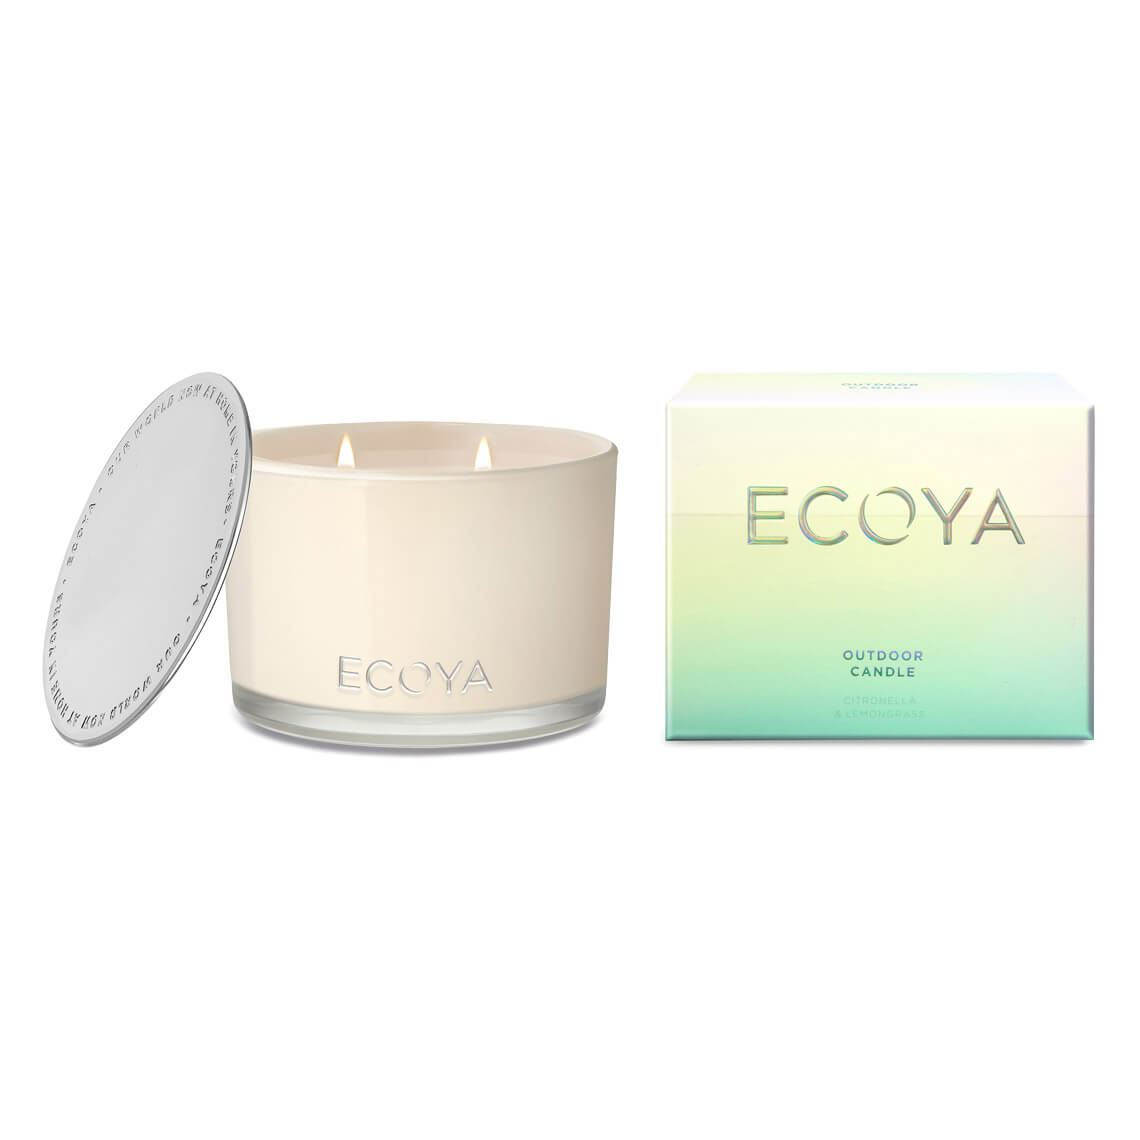 Ecoya Outdoor Candle Citronella & Lemongrass Size W 12cm x D 12cm x H 9cm in Citronella/Lemongrass Freedom